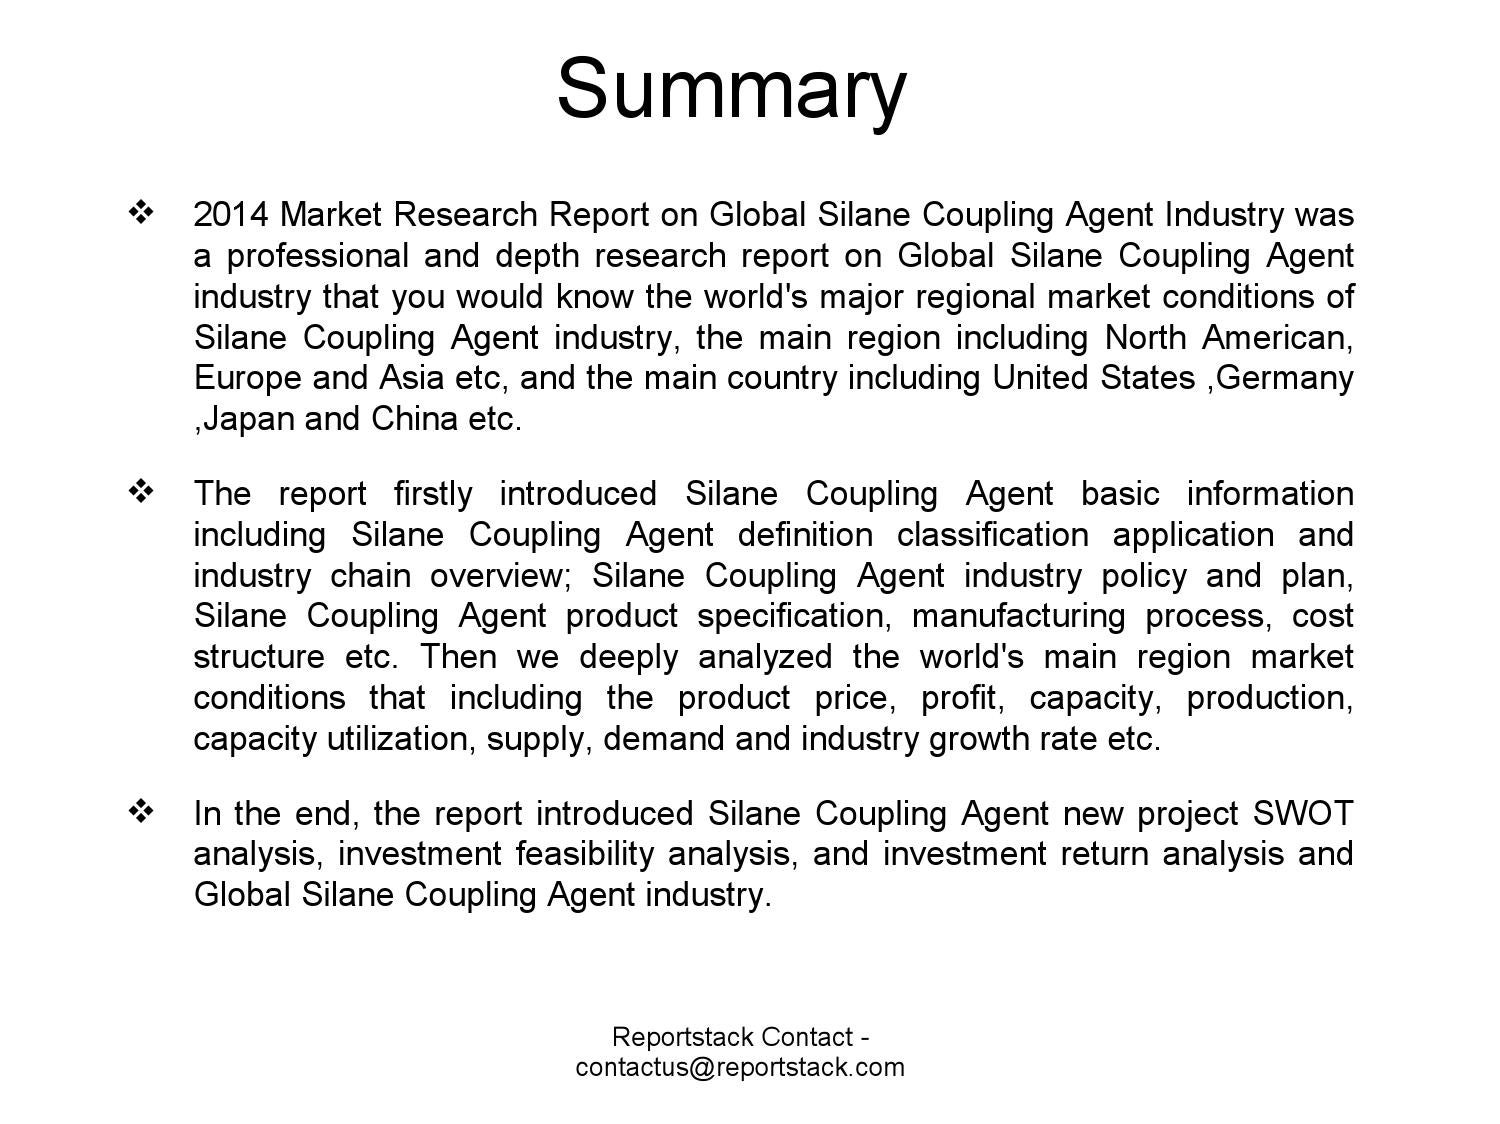 2014 market research report on global silane coupling agent